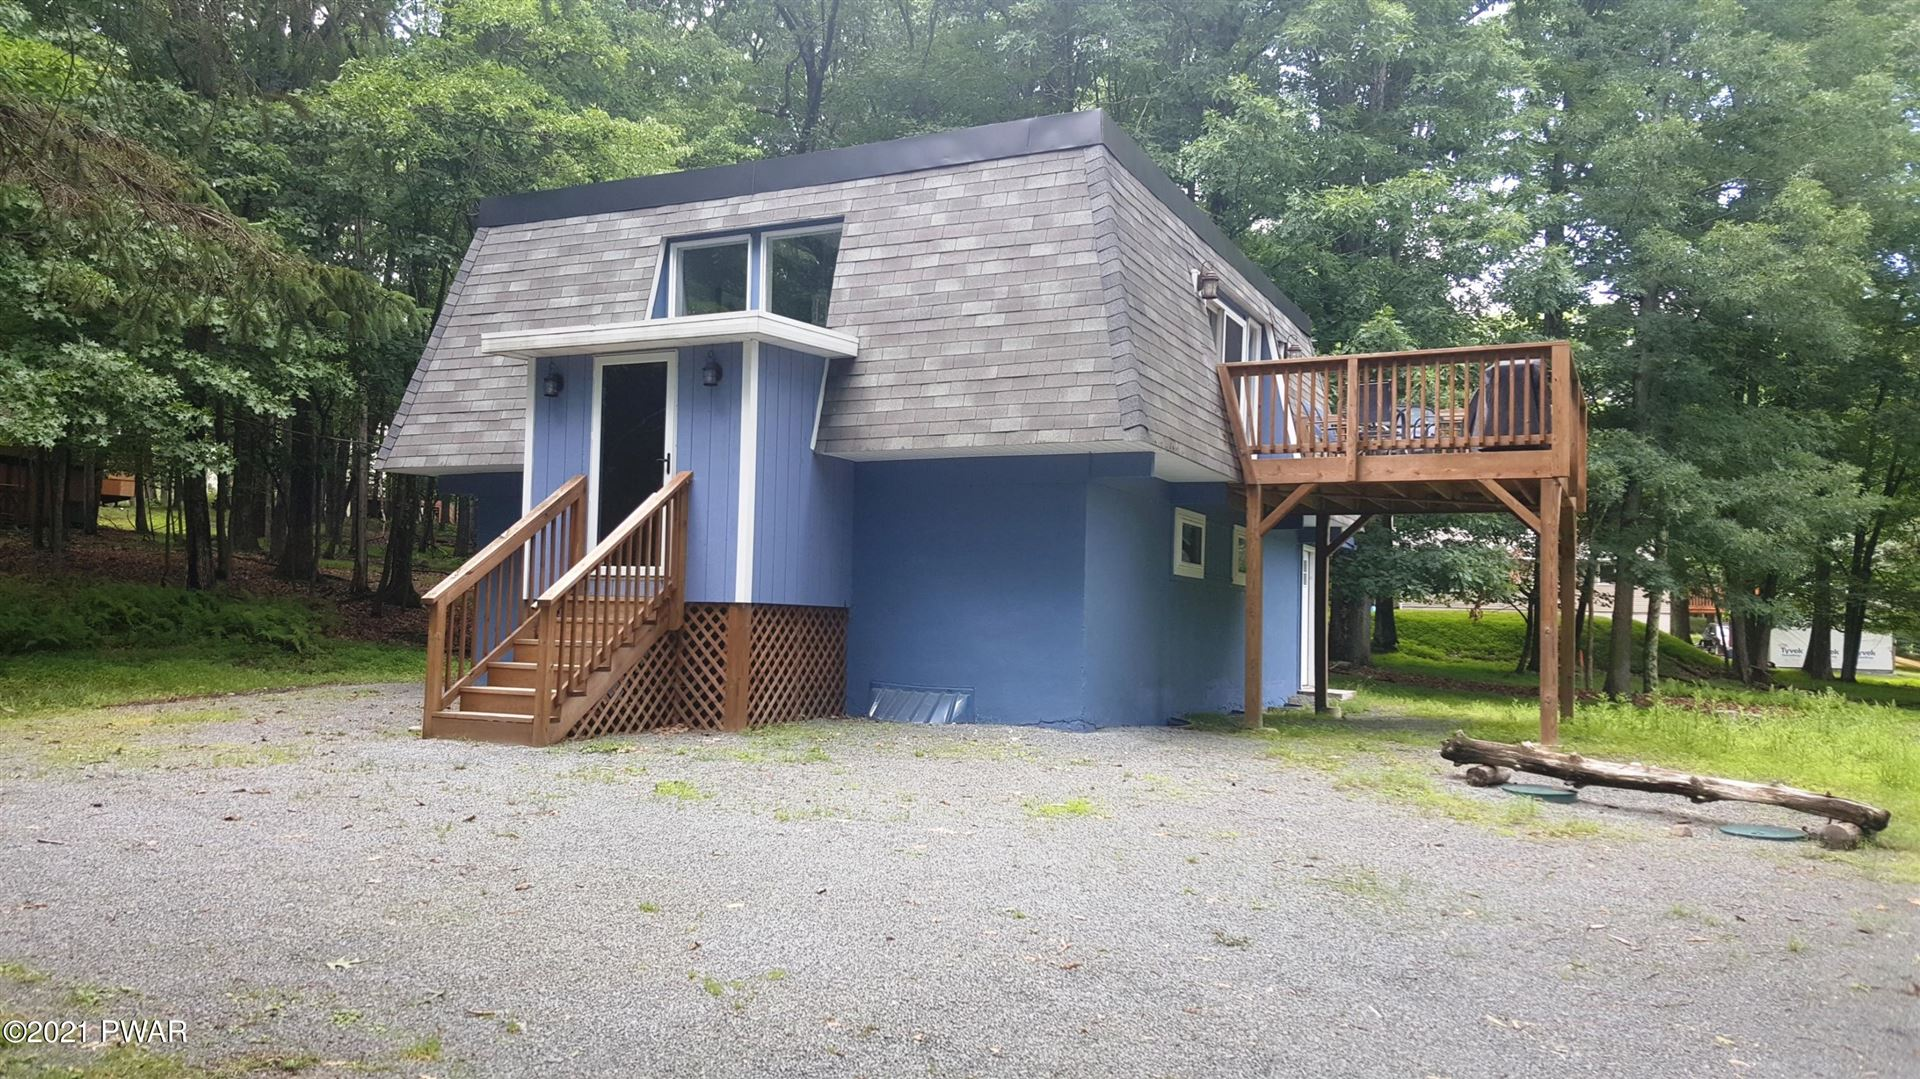 Photo of 255 Forest Ridge Dr, Hawley, PA 18428 (MLS # 21-2522)